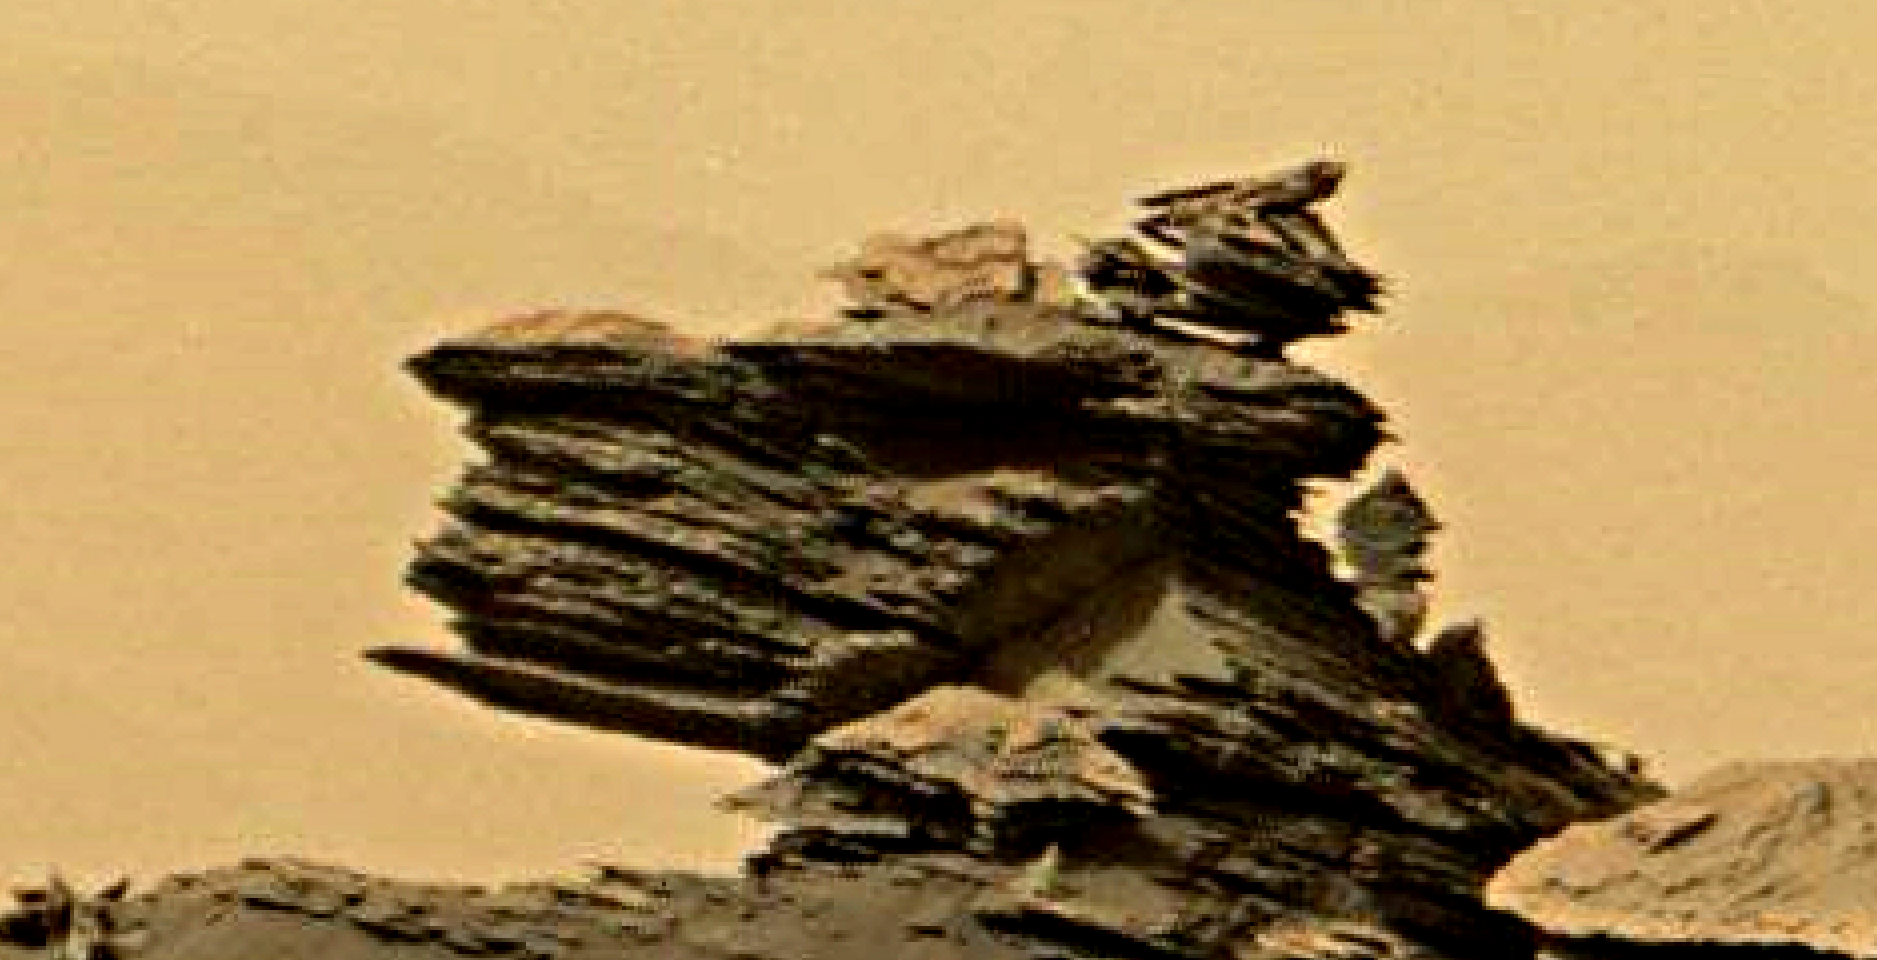 mars-sol-1450-anomaly-artifacts-5-was-life-on-mars